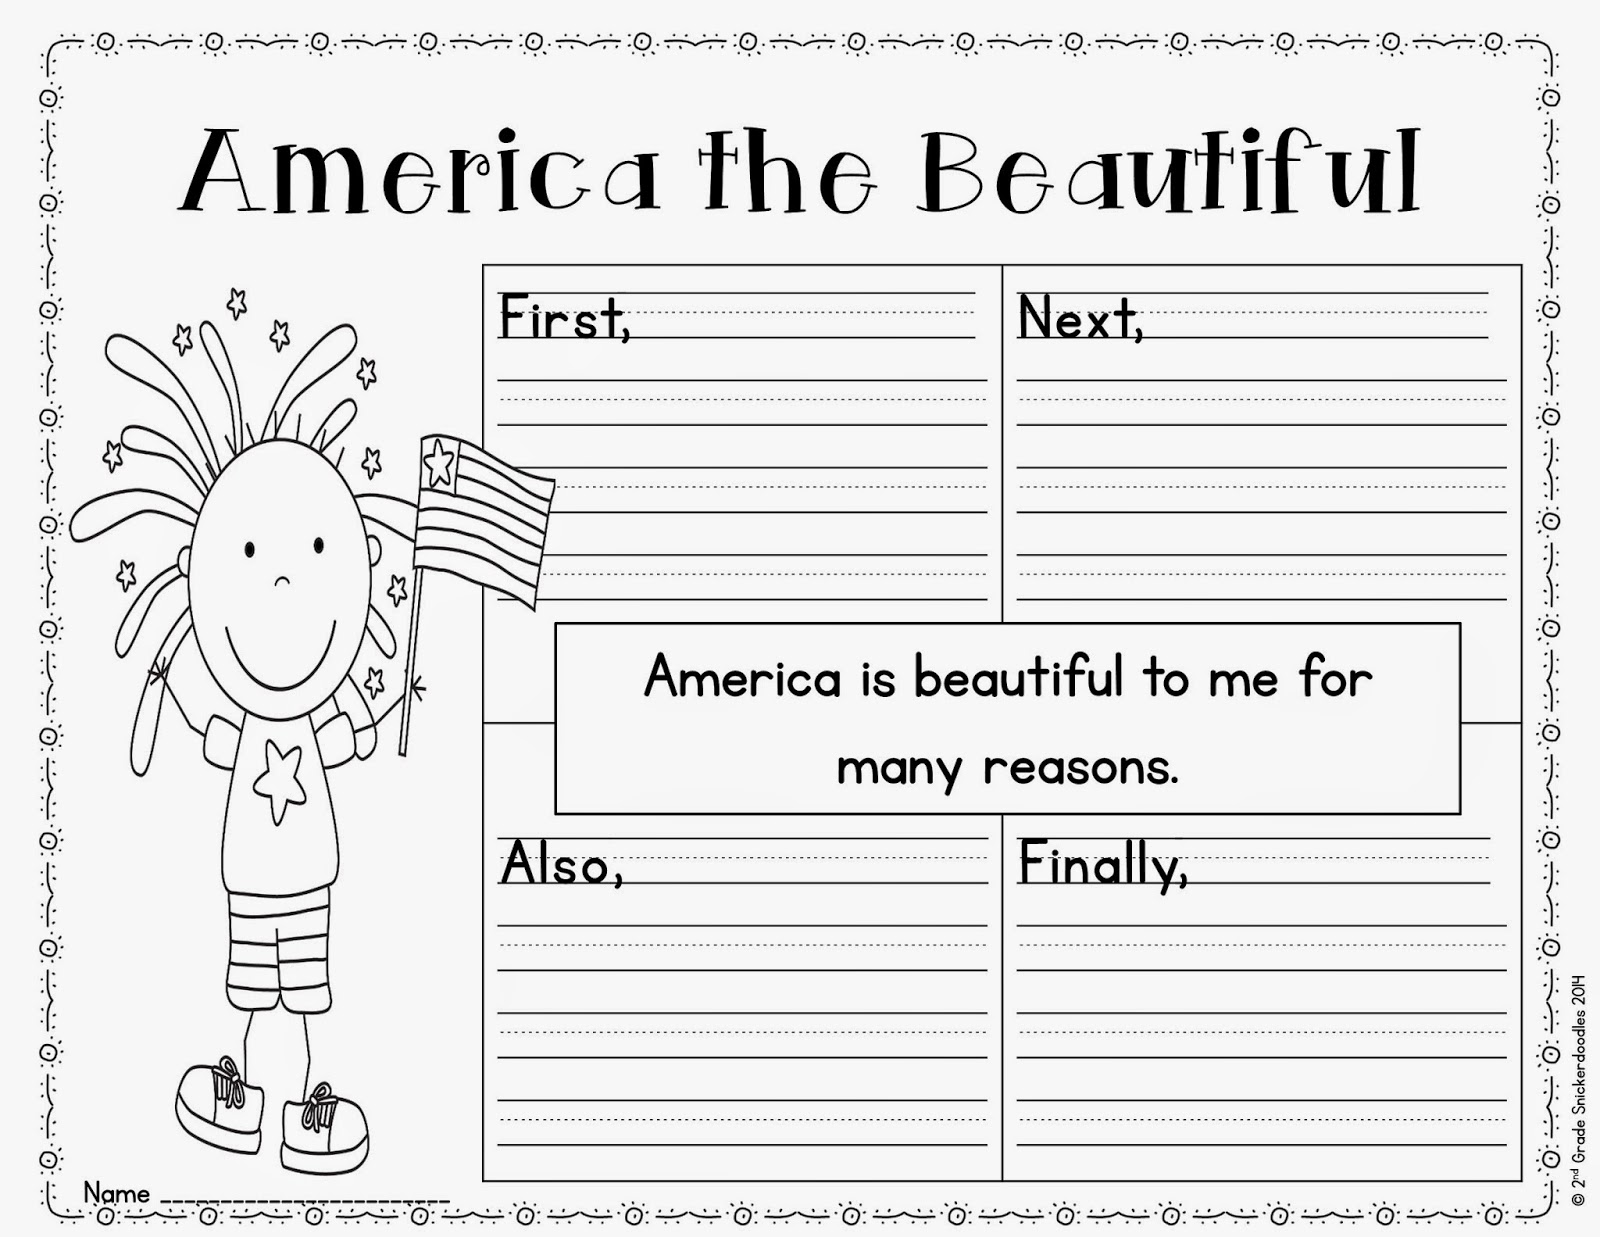 2nd Grade Snickerdoodles America The Beautiful Book Chat